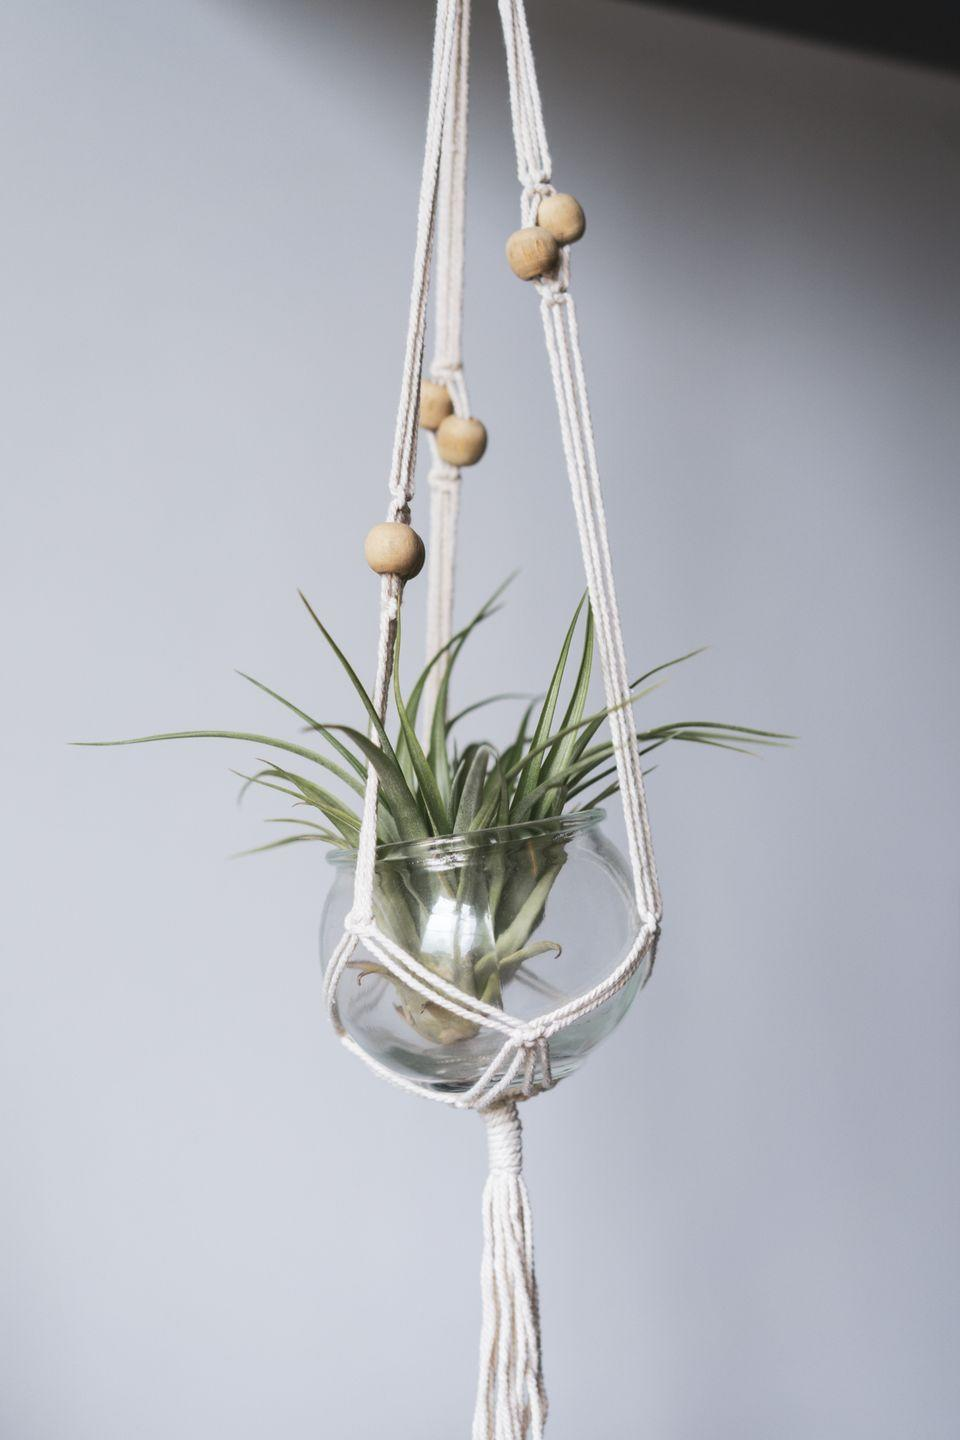 """<p>Air plants are a type of epiphyte, which means they can grow without soil. That means, it's the closest thing to a no-care plant! It's often sold in a glass globe, so hang it in a visible spot where you can see its delicate beauty. Give it bright light, and water by misting occasionally.</p><p><a class=""""link rapid-noclick-resp"""" href=""""https://www.amazon.com/Xerographica-Air-Plant-Plants-Pets/dp/B07QVSZJLT/?tag=syn-yahoo-20&ascsubtag=%5Bartid%7C10055.g.32440507%5Bsrc%7Cyahoo-us"""" rel=""""nofollow noopener"""" target=""""_blank"""" data-ylk=""""slk:SHOP TILLANDSIA"""">SHOP TILLANDSIA</a></p>"""